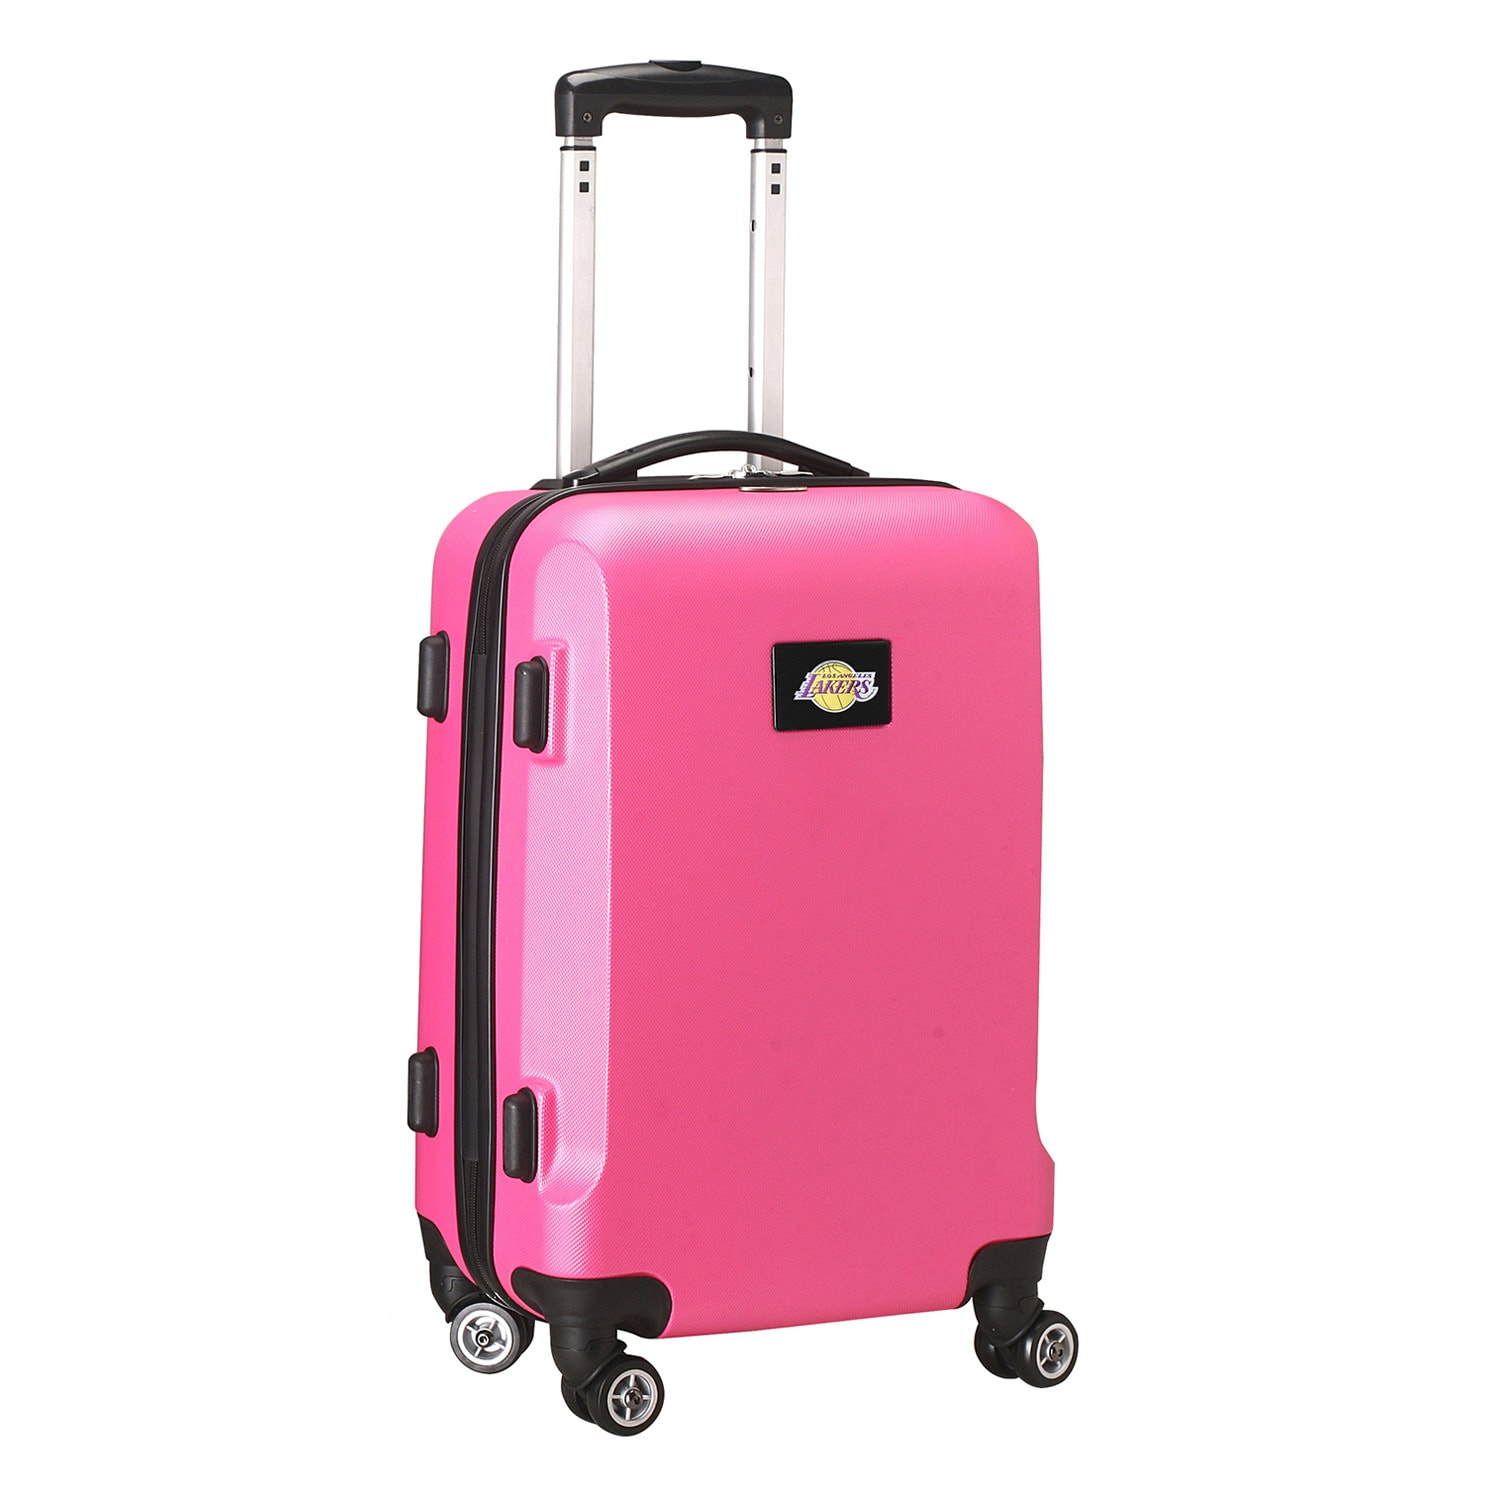 "Los Angeles Lakers 20"" 8-Wheel Hardcase Spinner Carry-On - Pink"